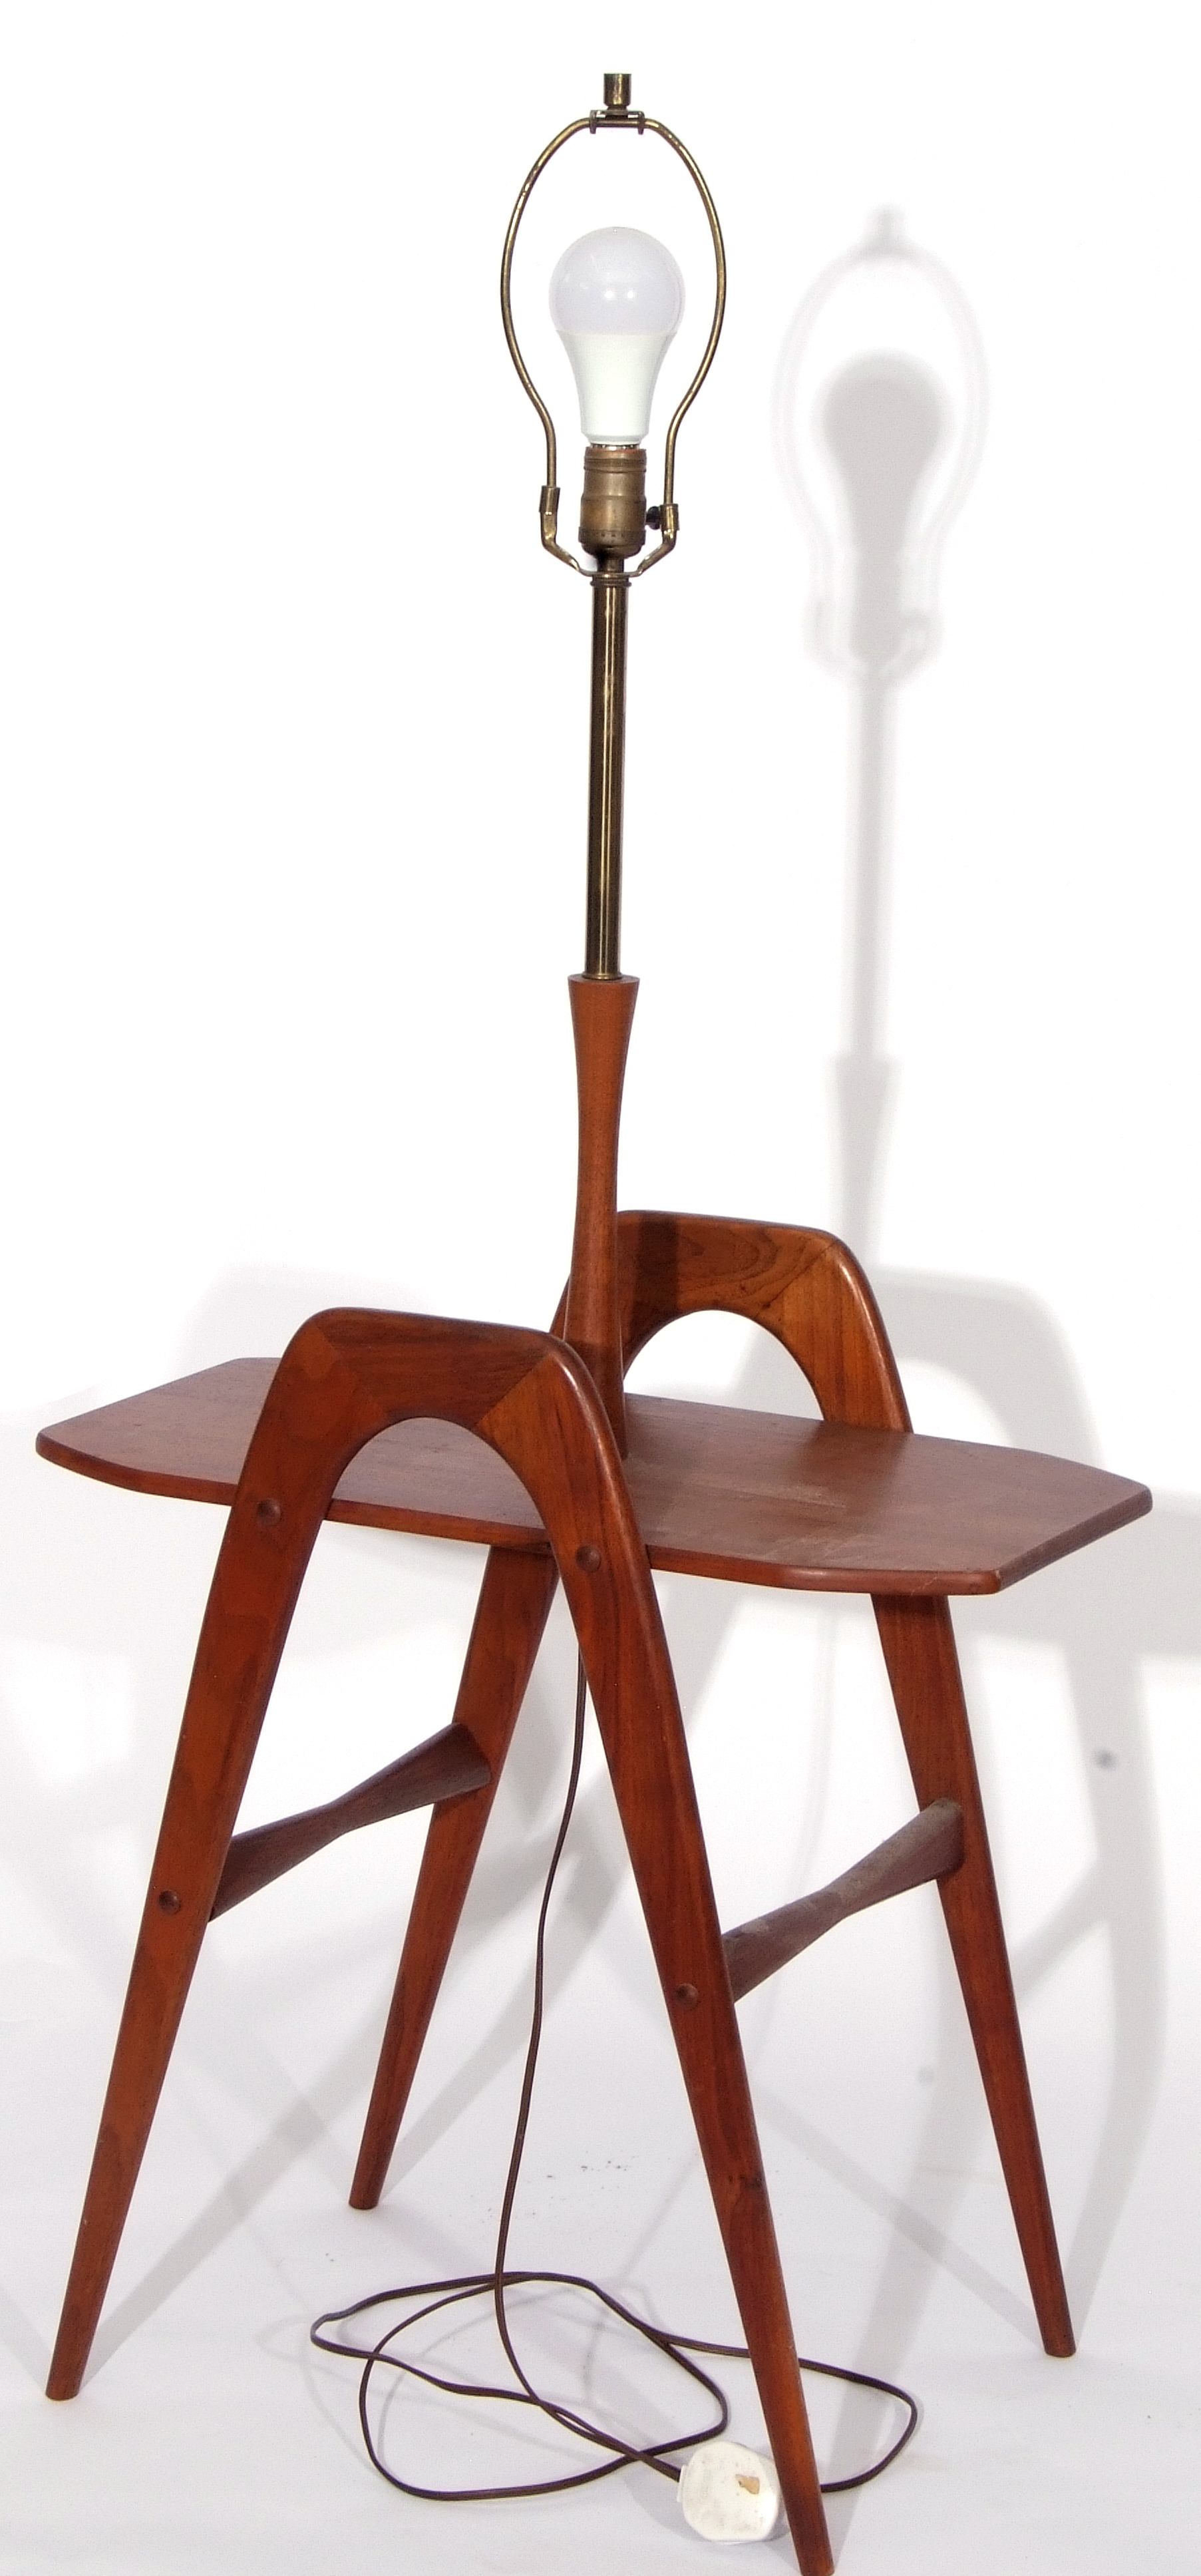 Circa 1960s Danish style magazine table with inset lamp holder - Image 2 of 2